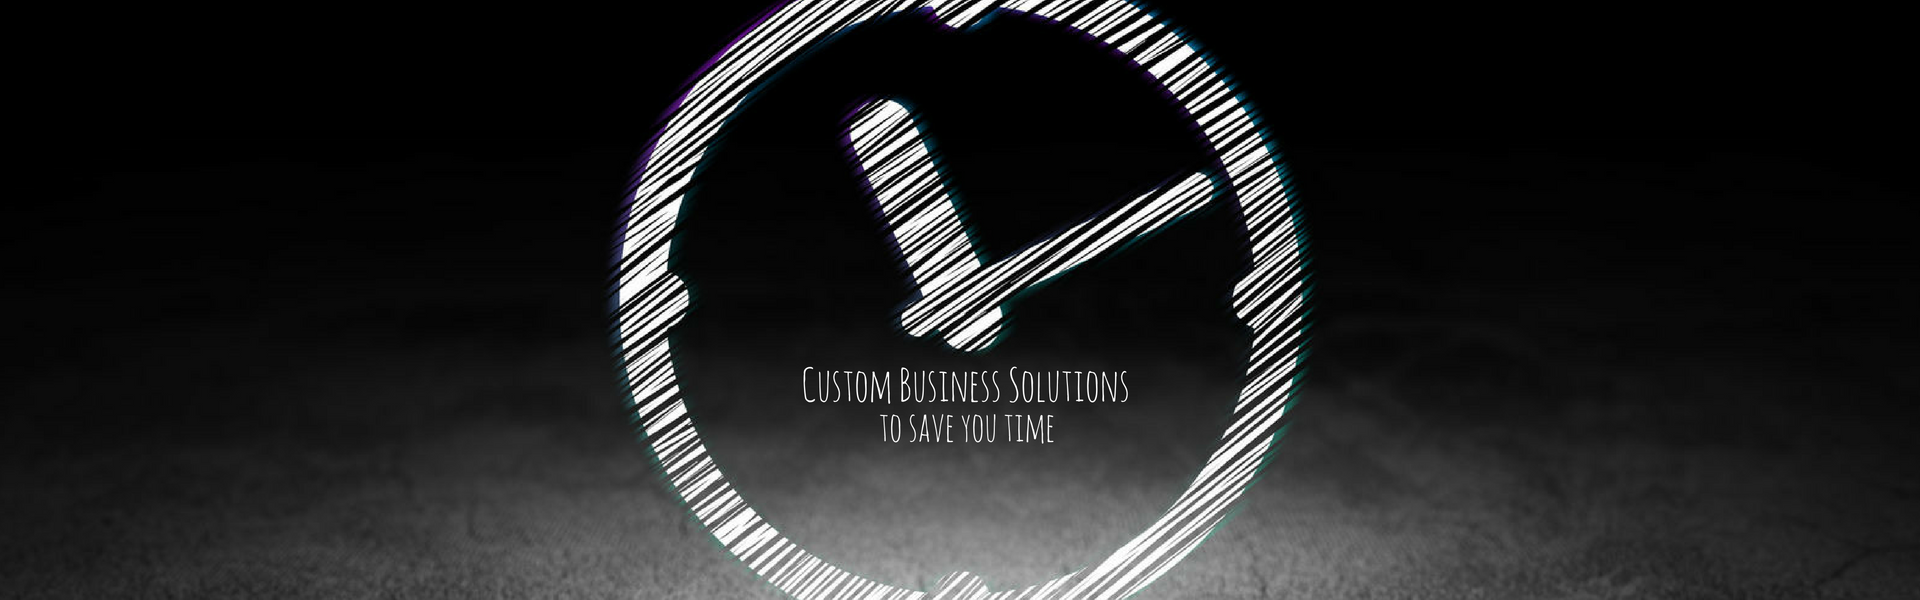 LTI Business Solutions